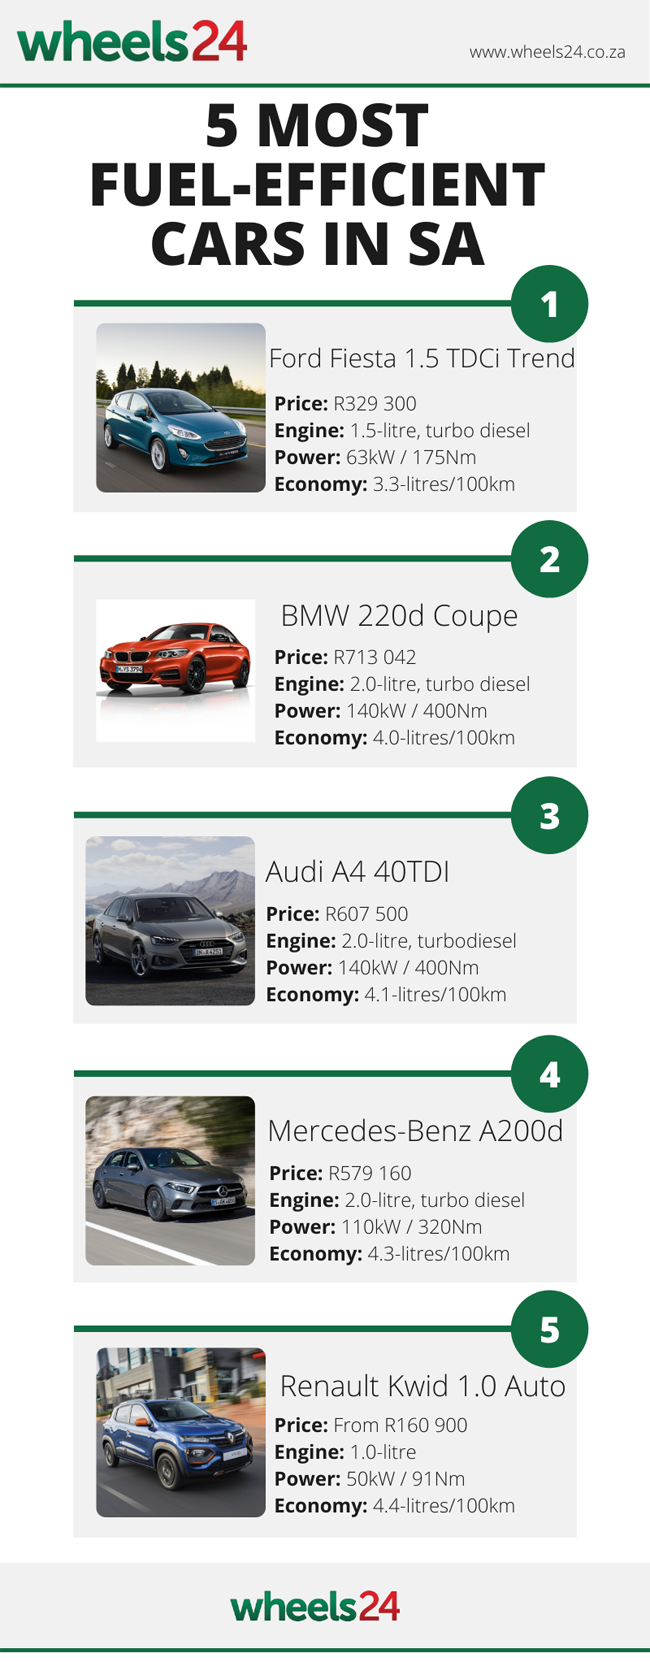 See Here Are The Five Most Fuel Efficient Cars In Sa Wheels